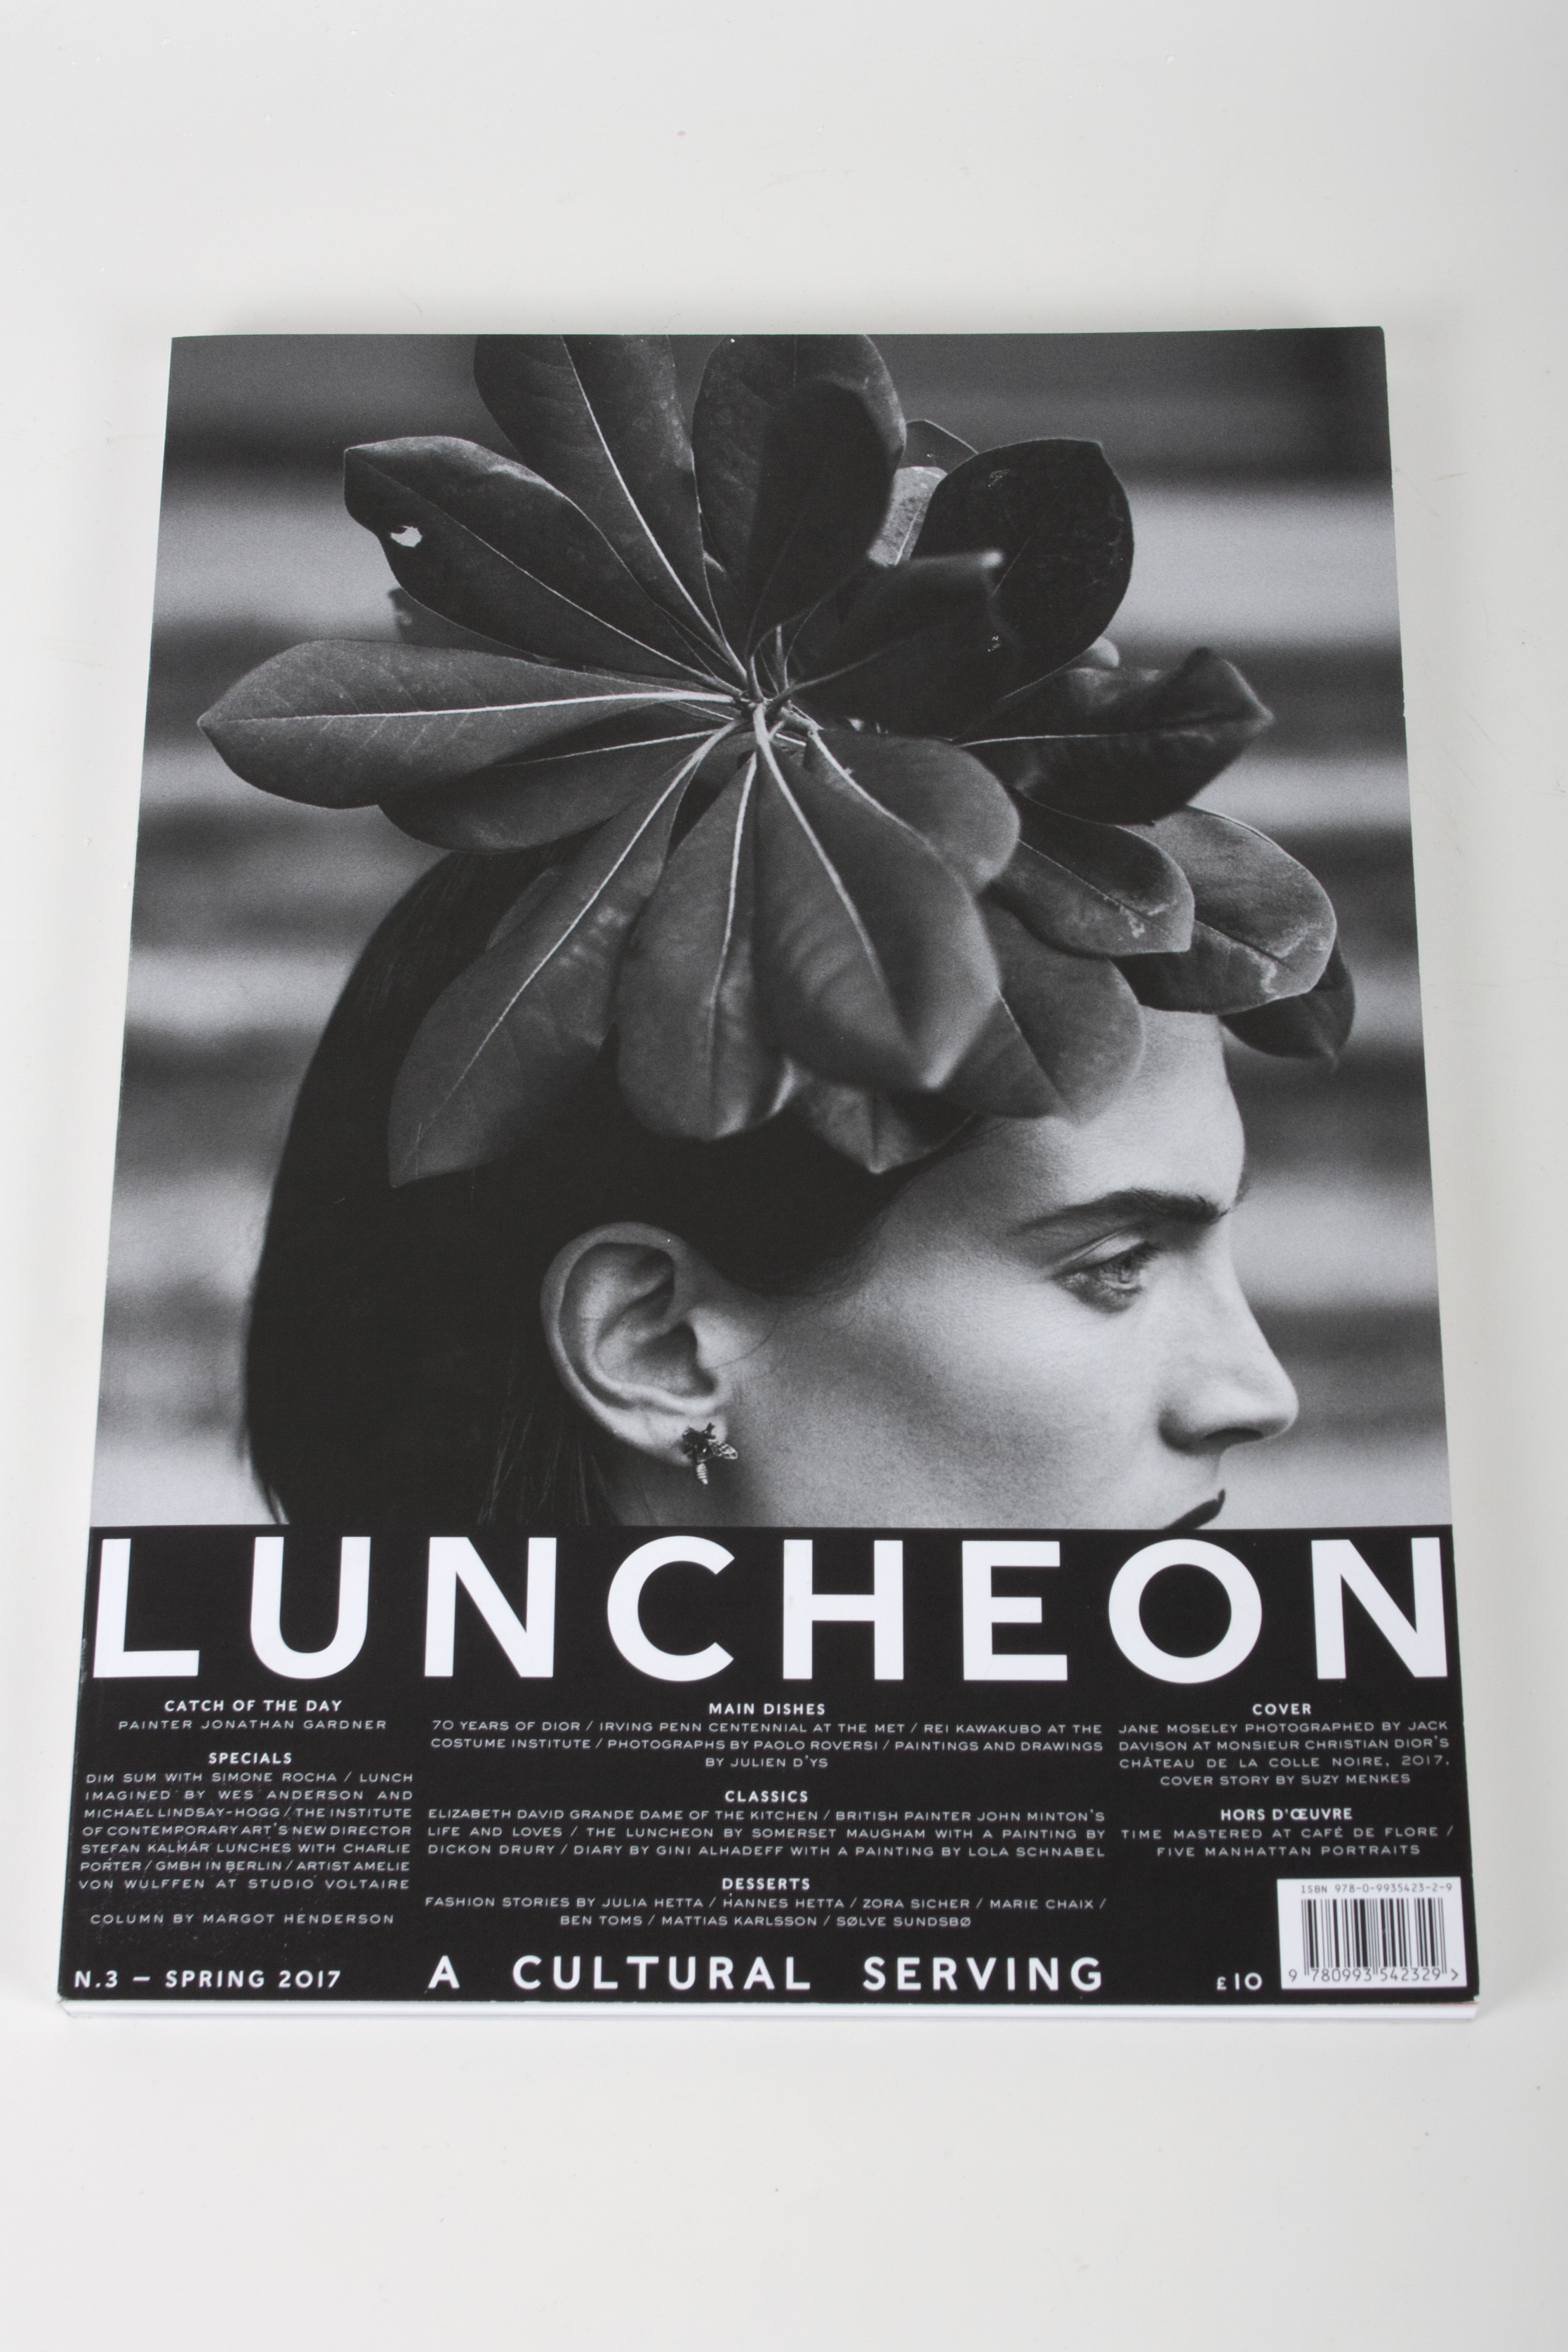 luncheon_tidning_1